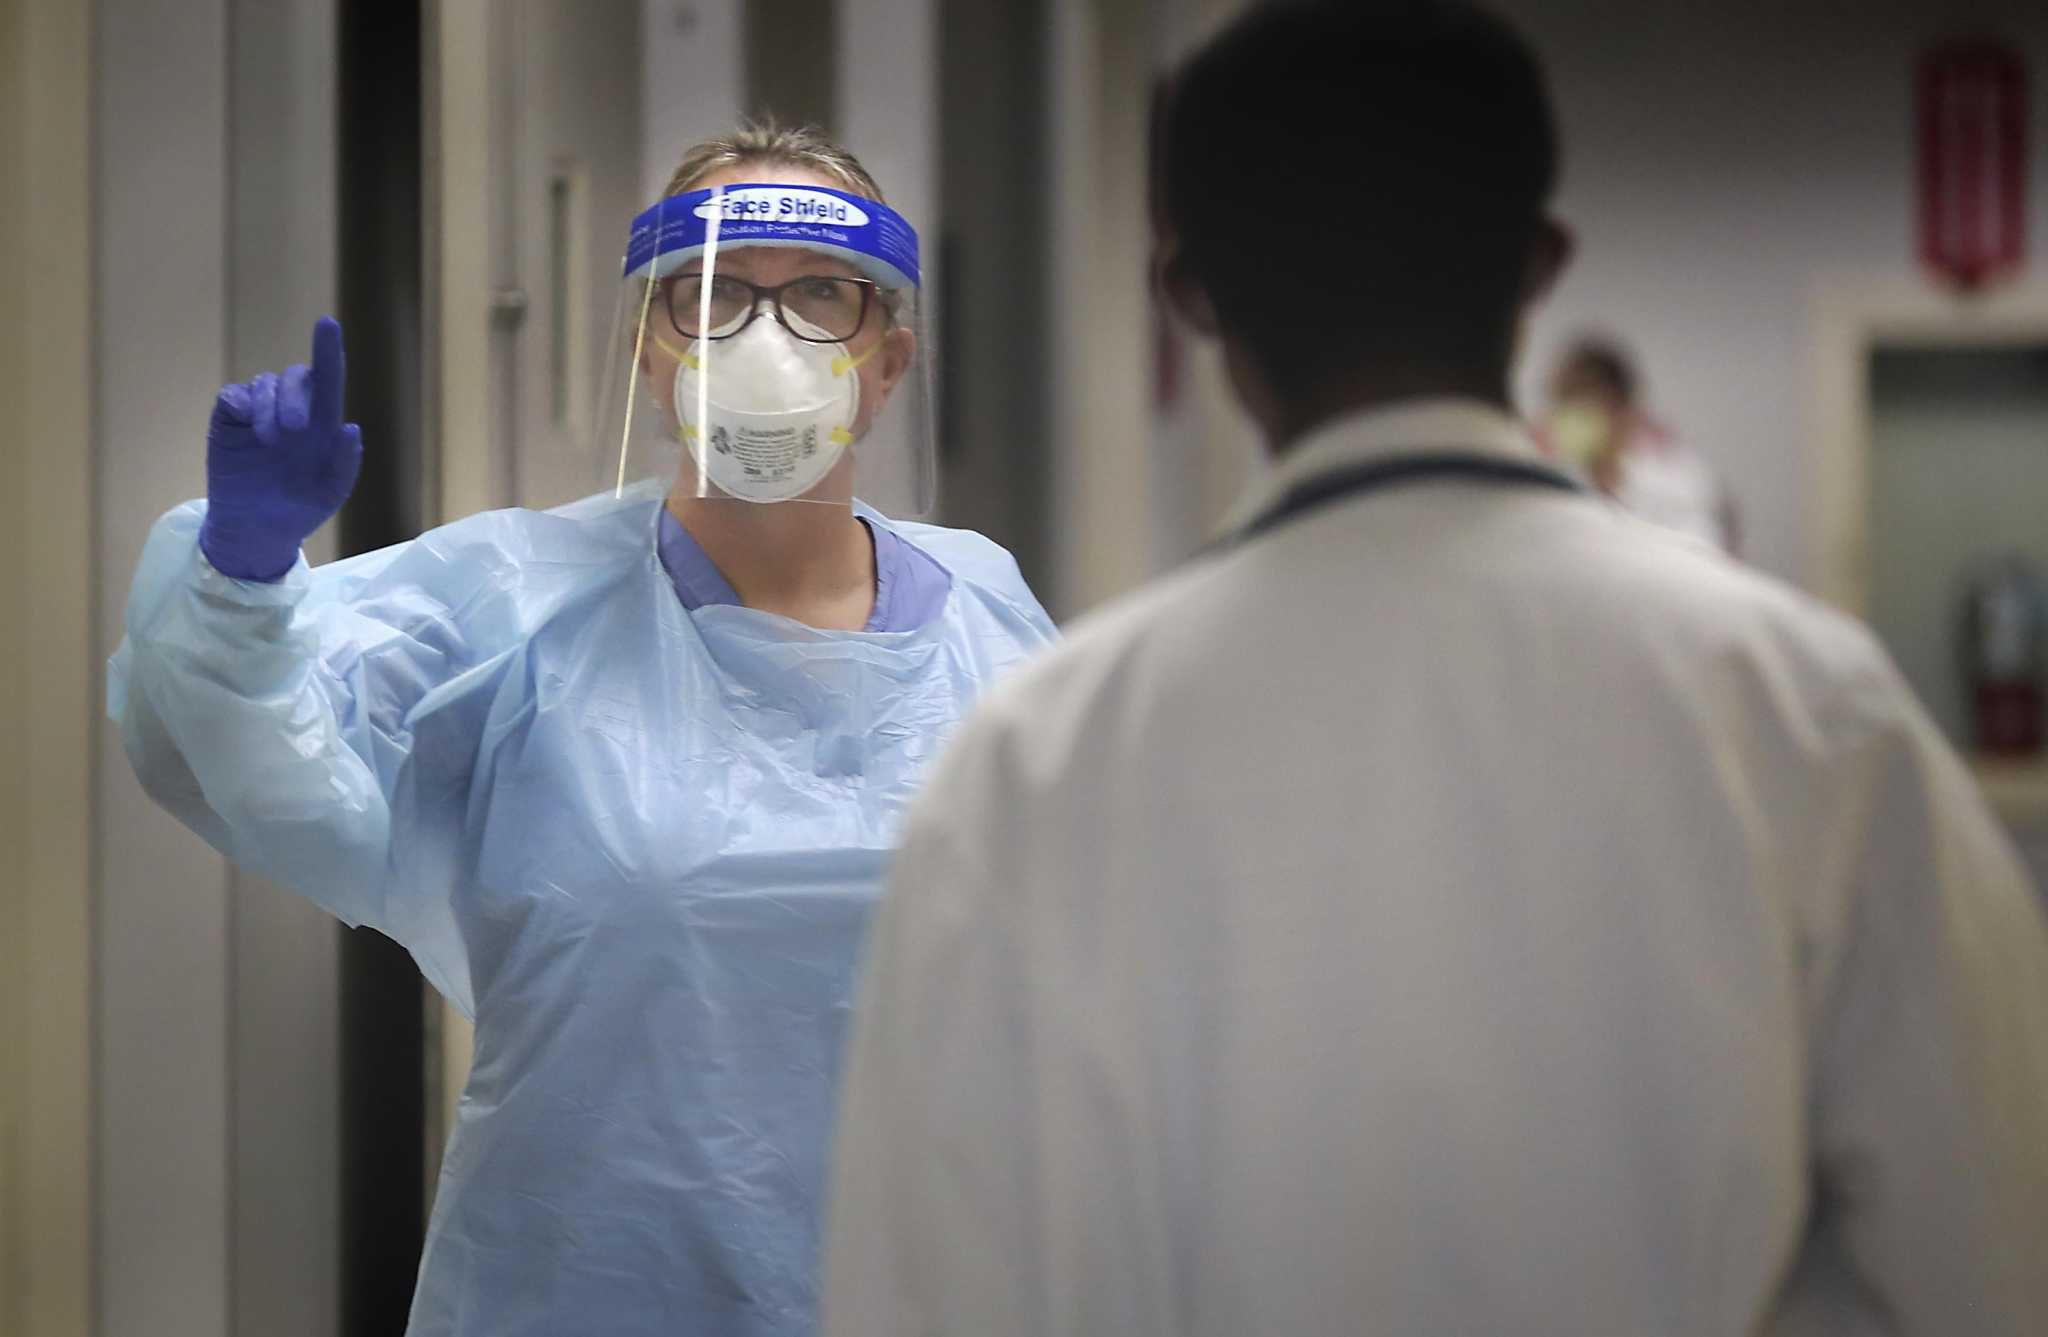 Texas is in another COVID-19 surge. But the state isn't sending nurses to help